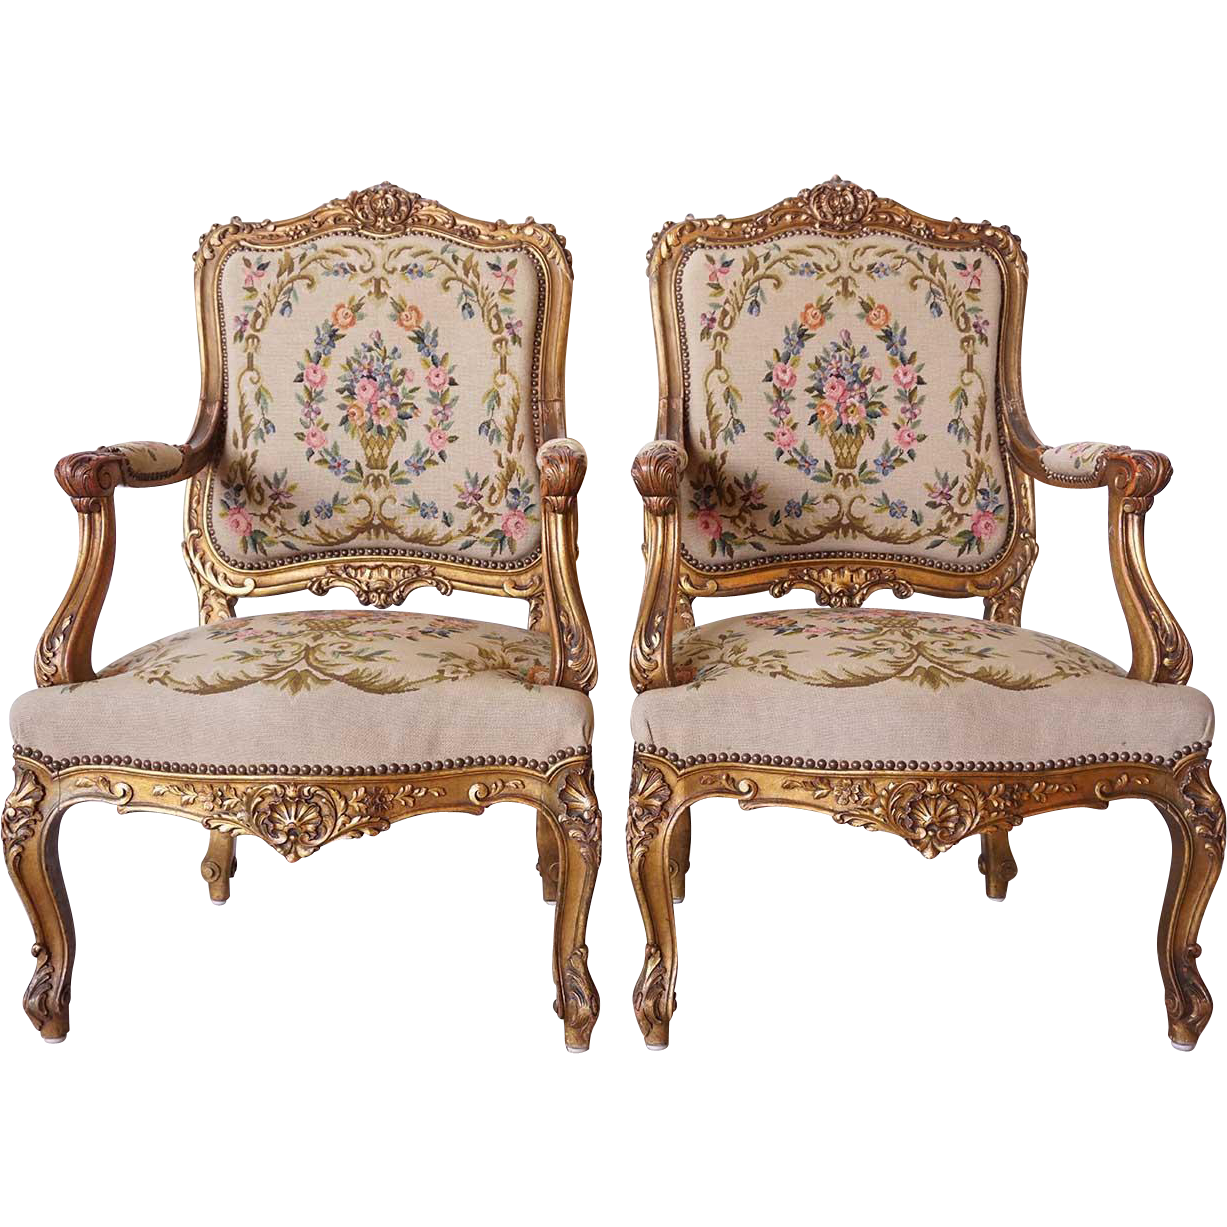 Pair of French Louis XV Style Gilt Beechwood Armchairs (Fauteuils)